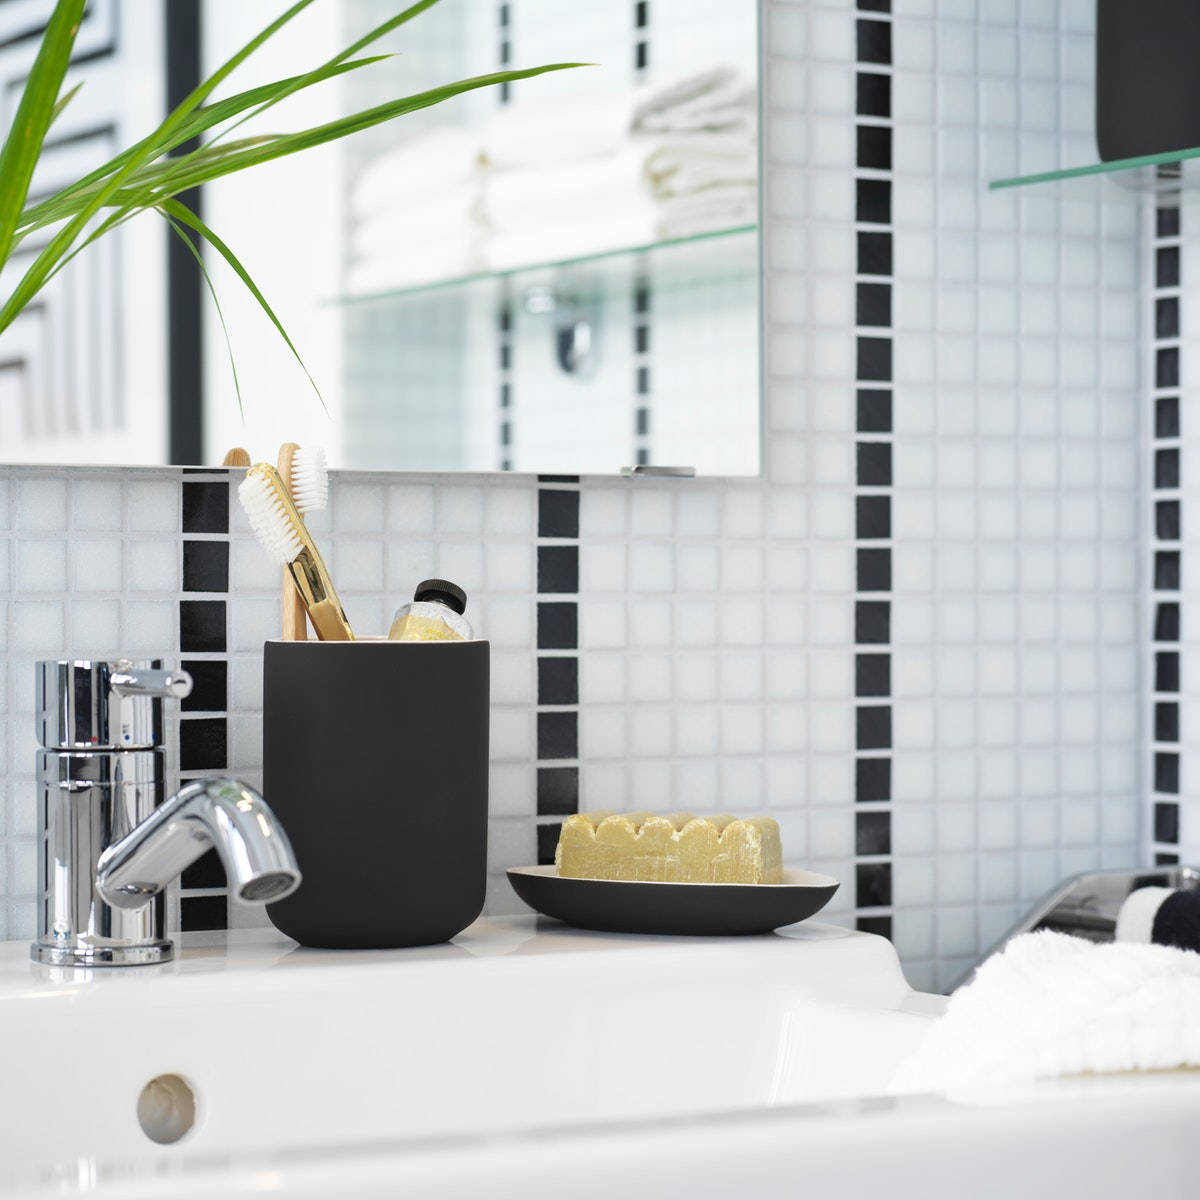 Smooth bathroom routines with easy to reach storage